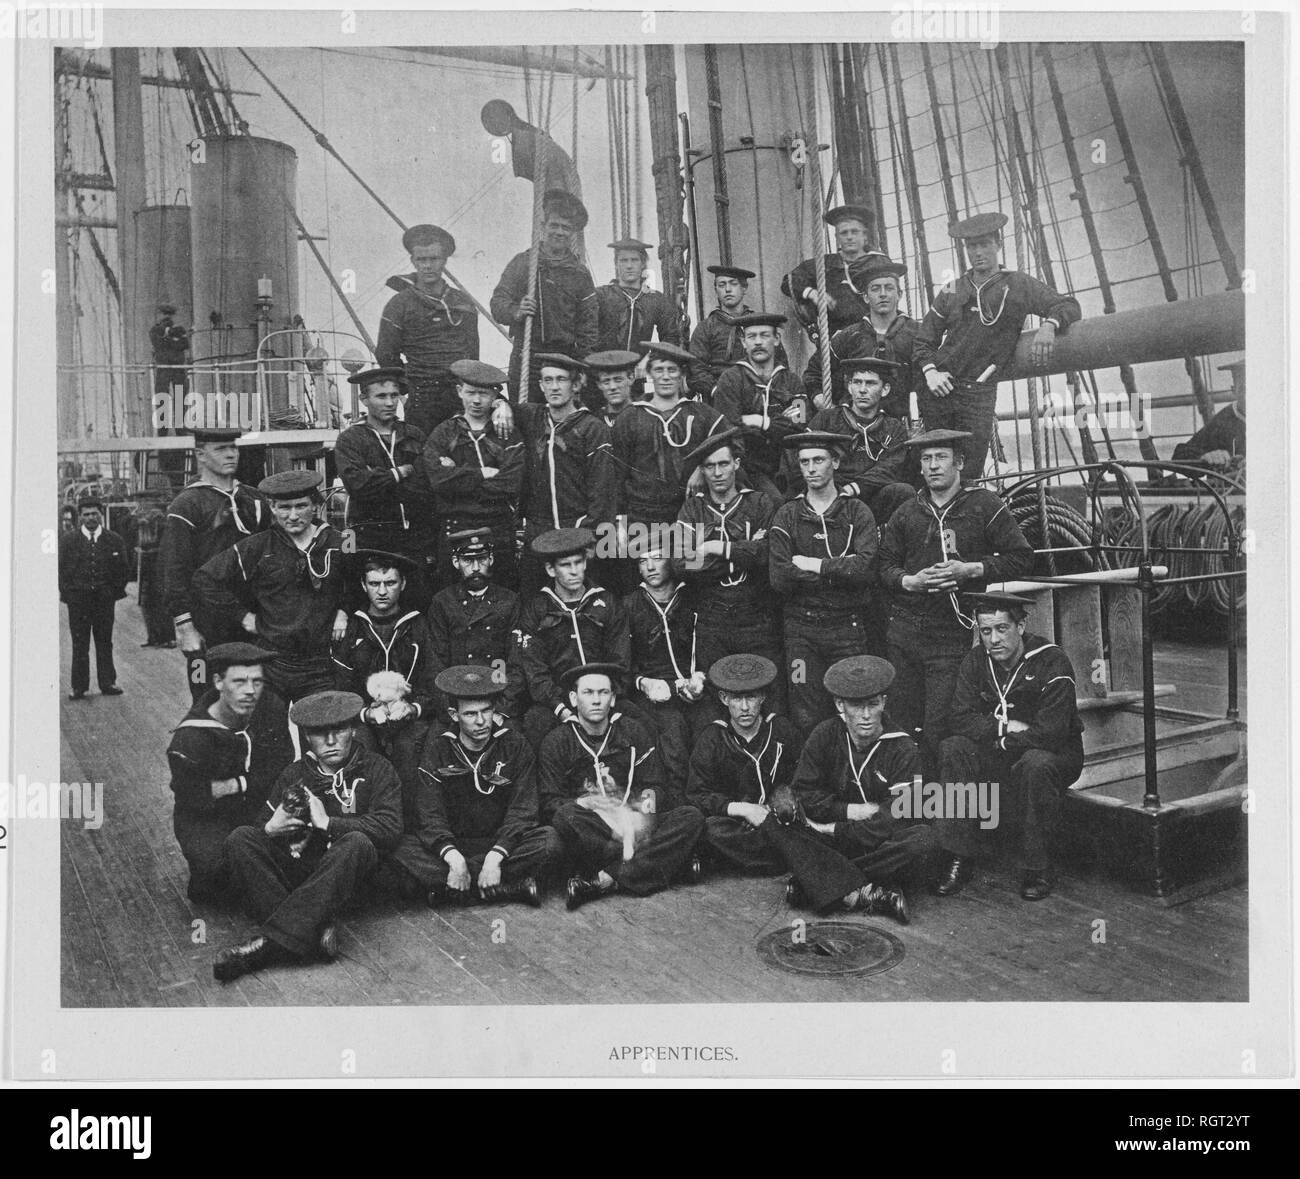 USS PENSACOLA (1859-1911) Ship's apprentices pose with